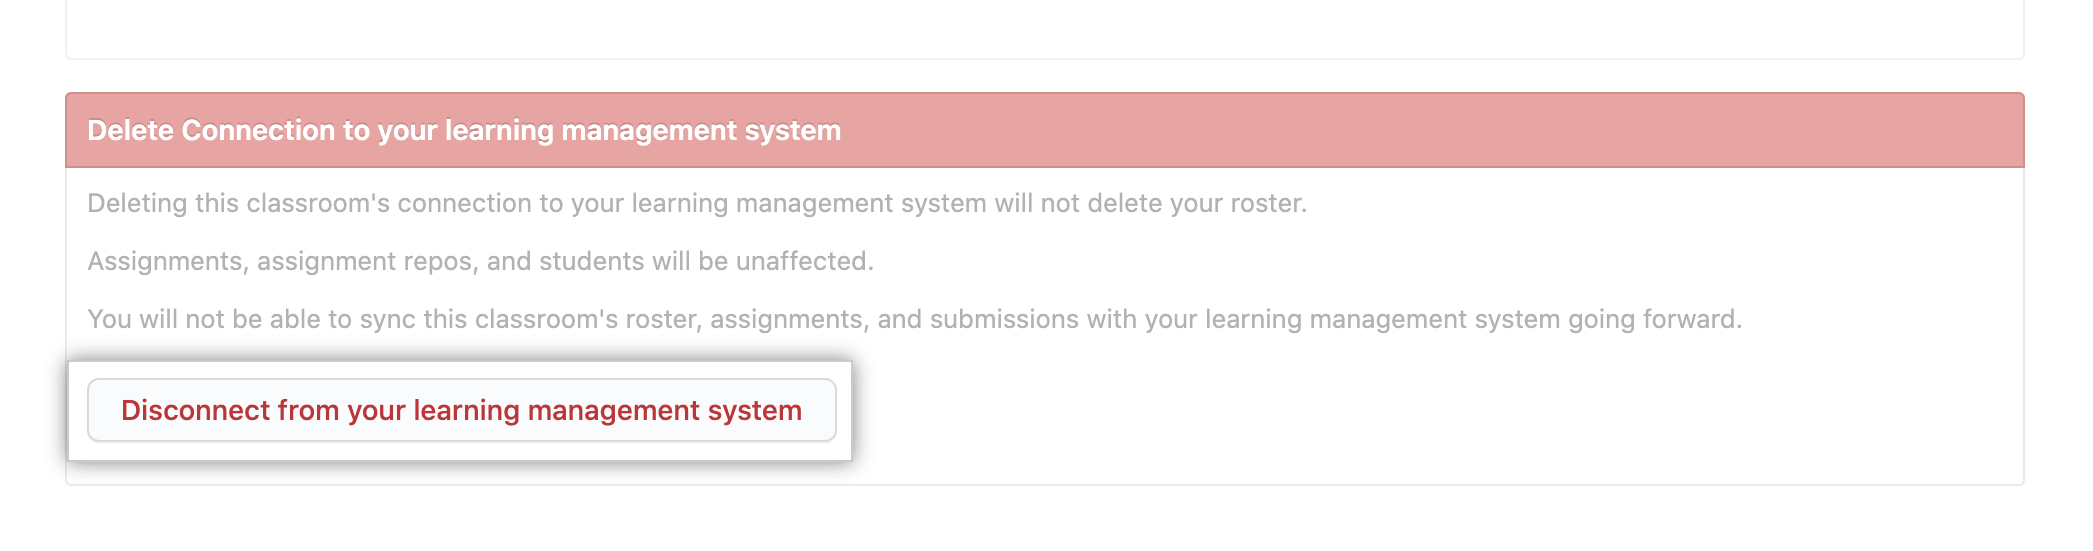 """Disconnect from your learning management system"" button in connection settings for classroom"